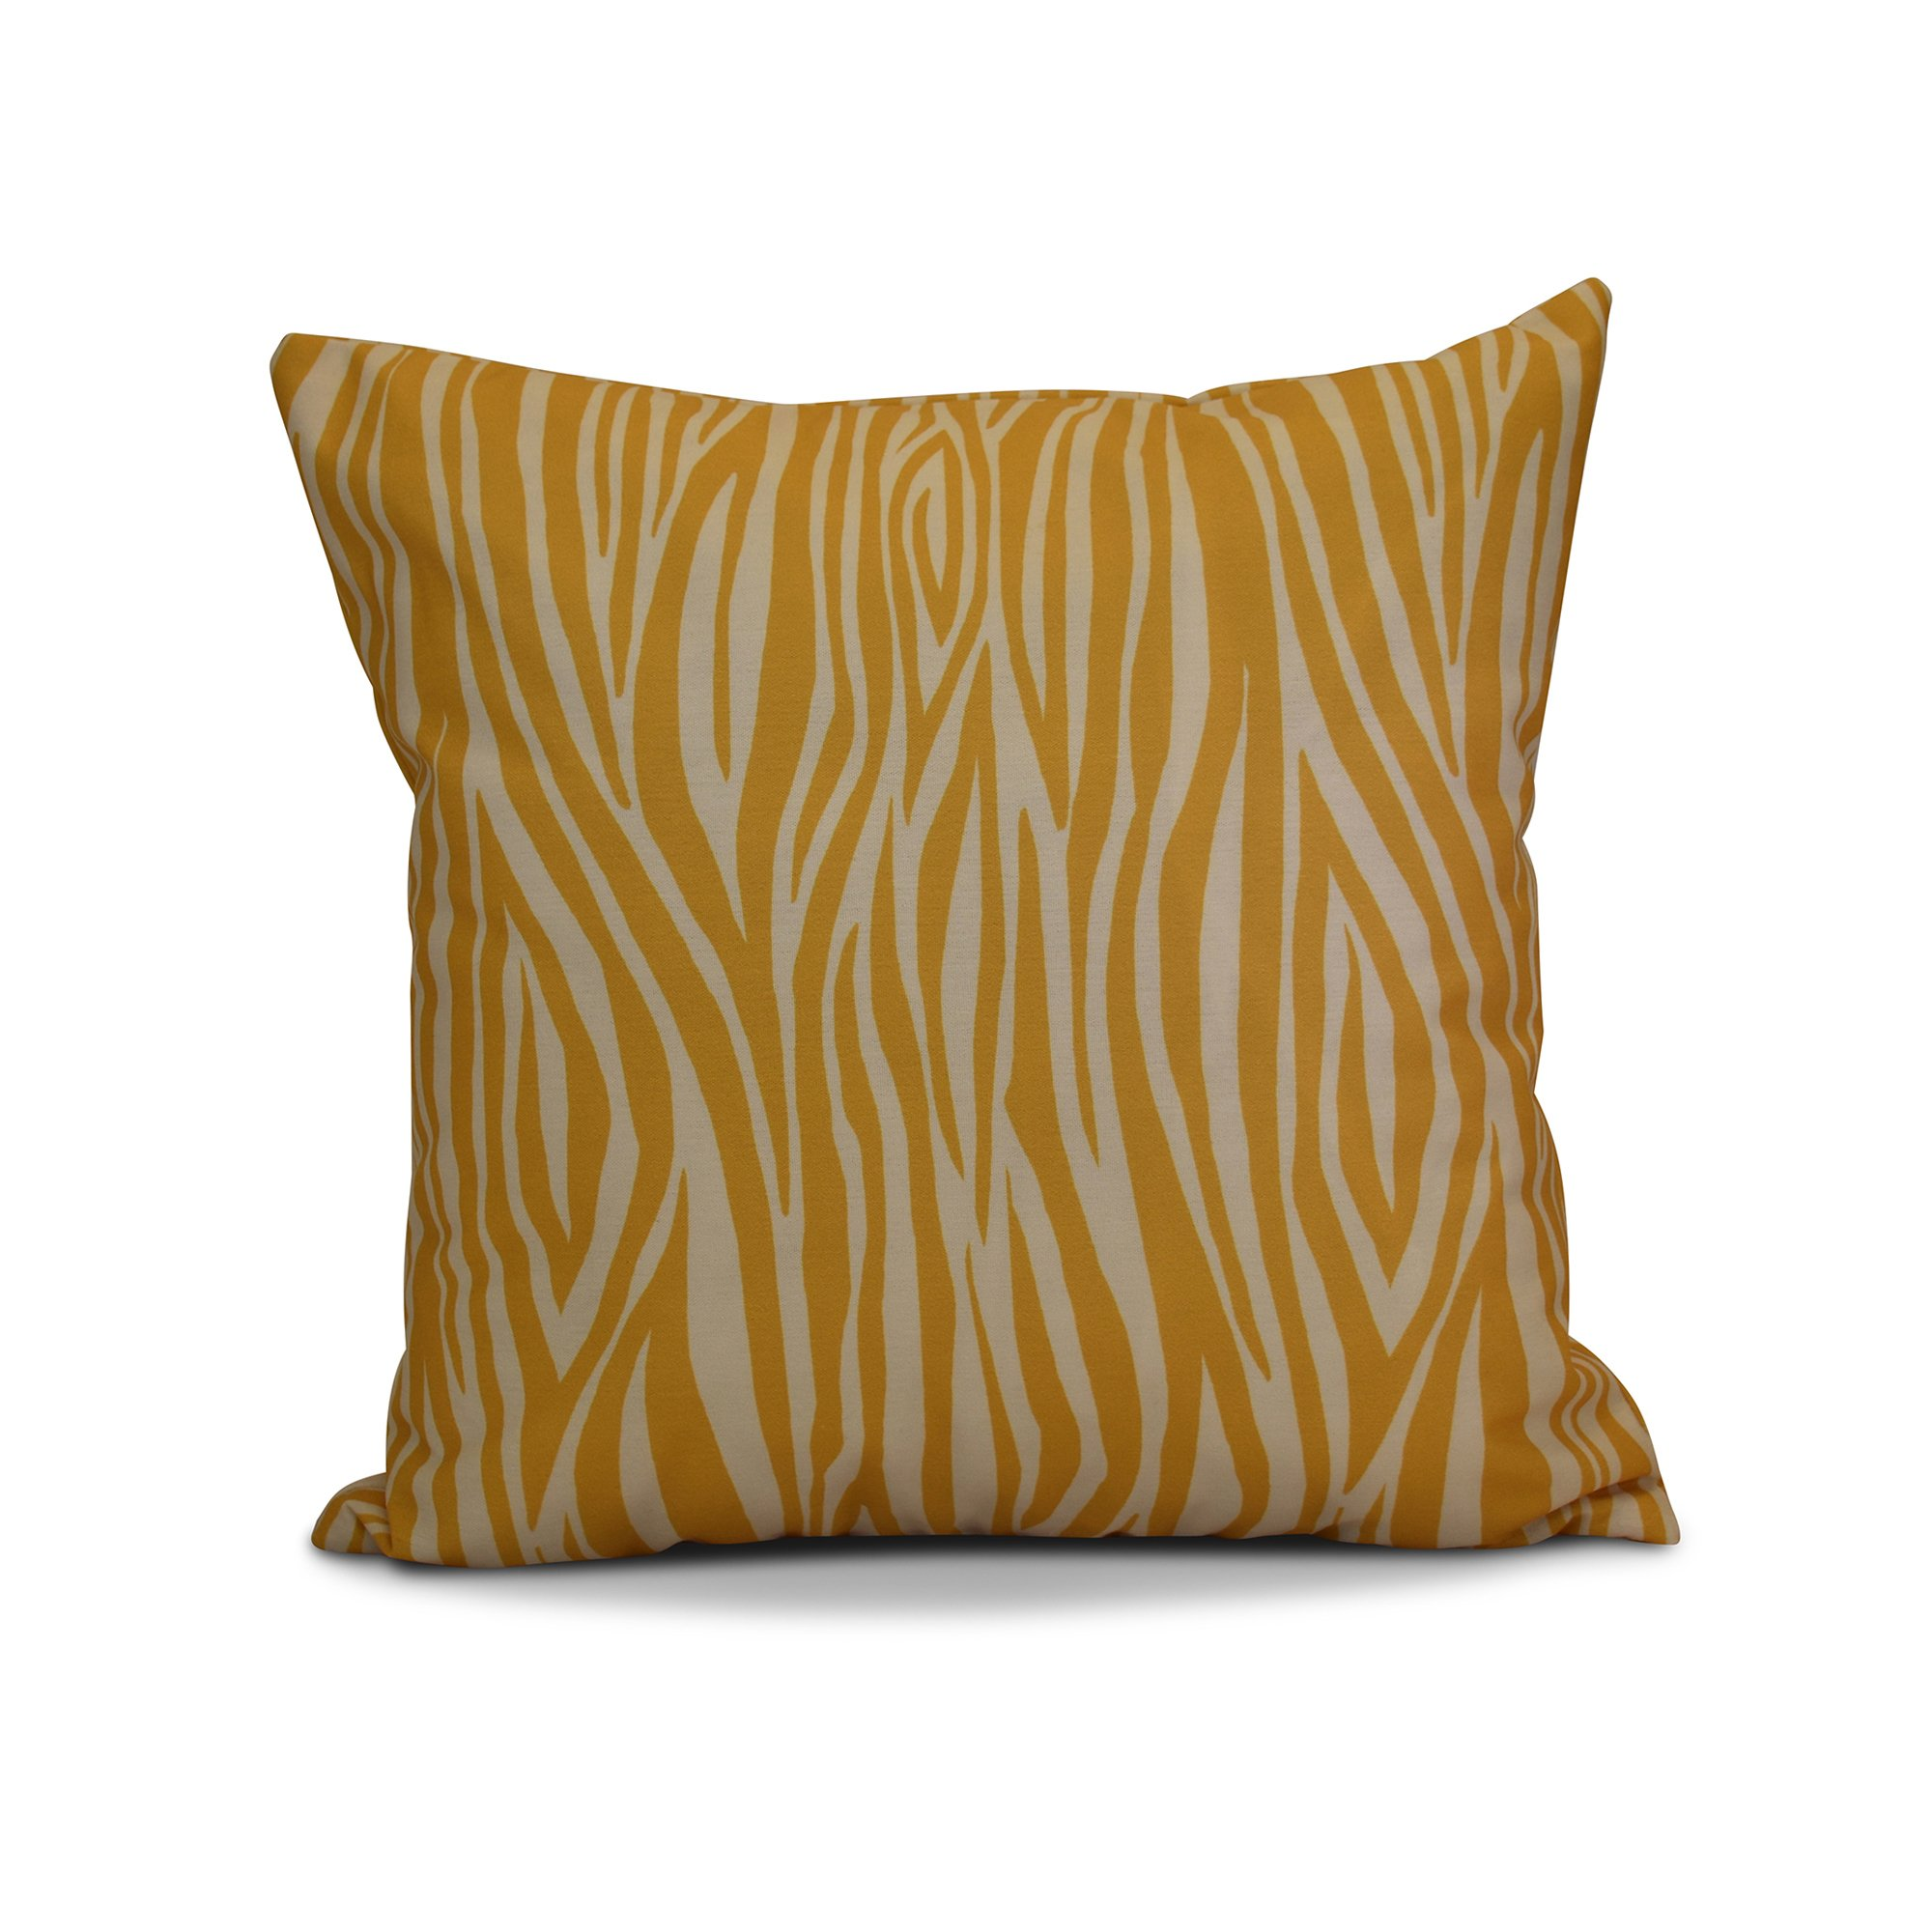 E by design 18 x 18-inch, Wood Stripe, Geometric Print Pillow, Gold by E by design (Image #1)